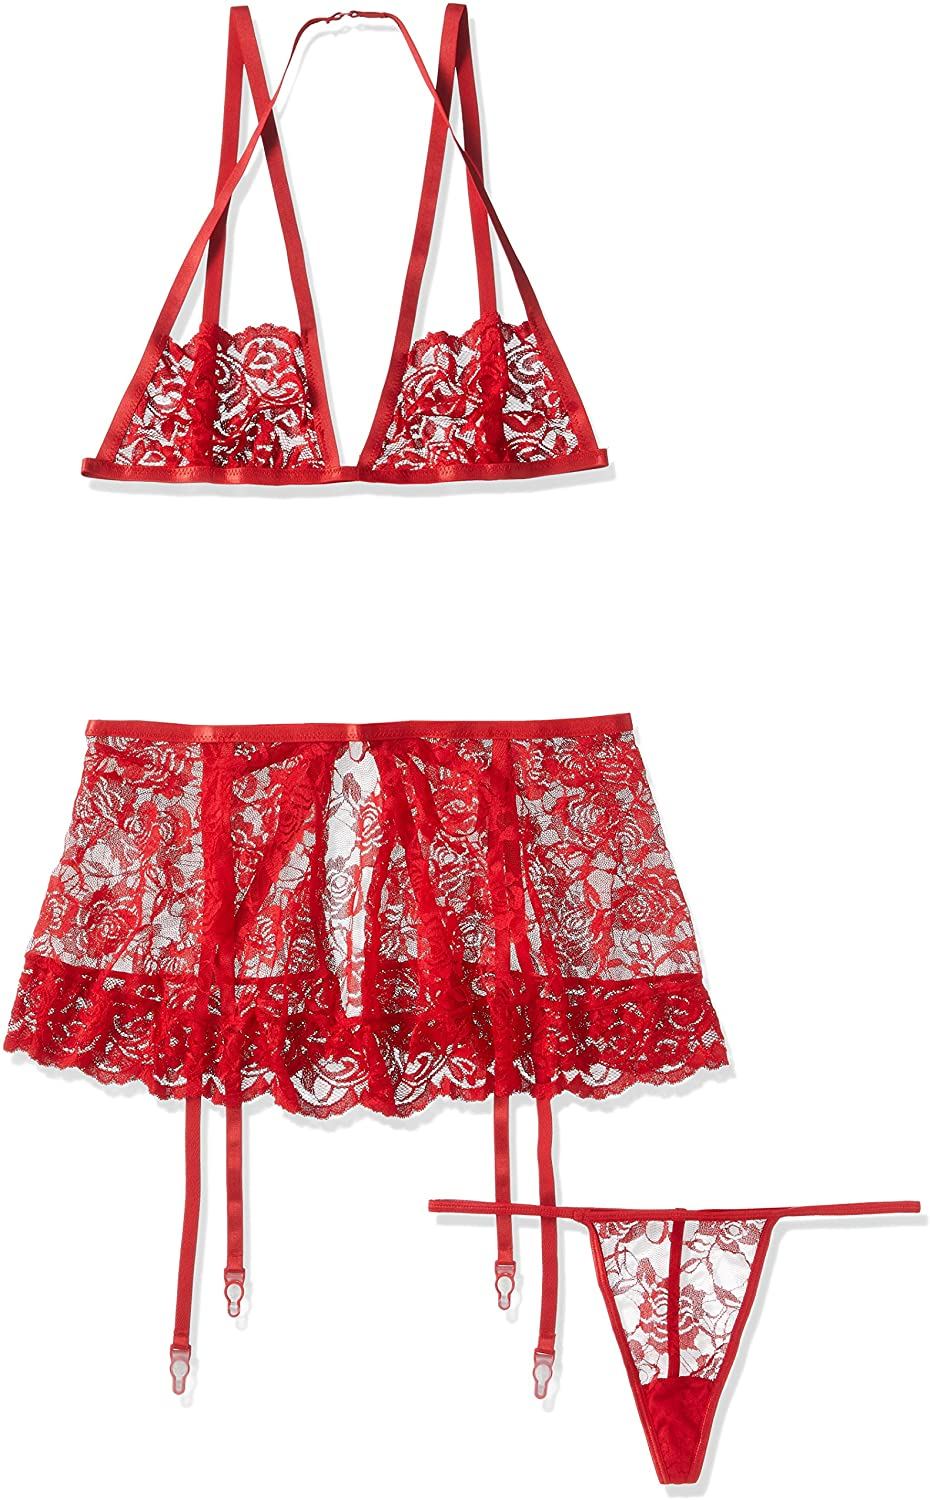 Dreamgirl Women's 3-Piece Lace Bralette, Garter Skirt and G-String Set